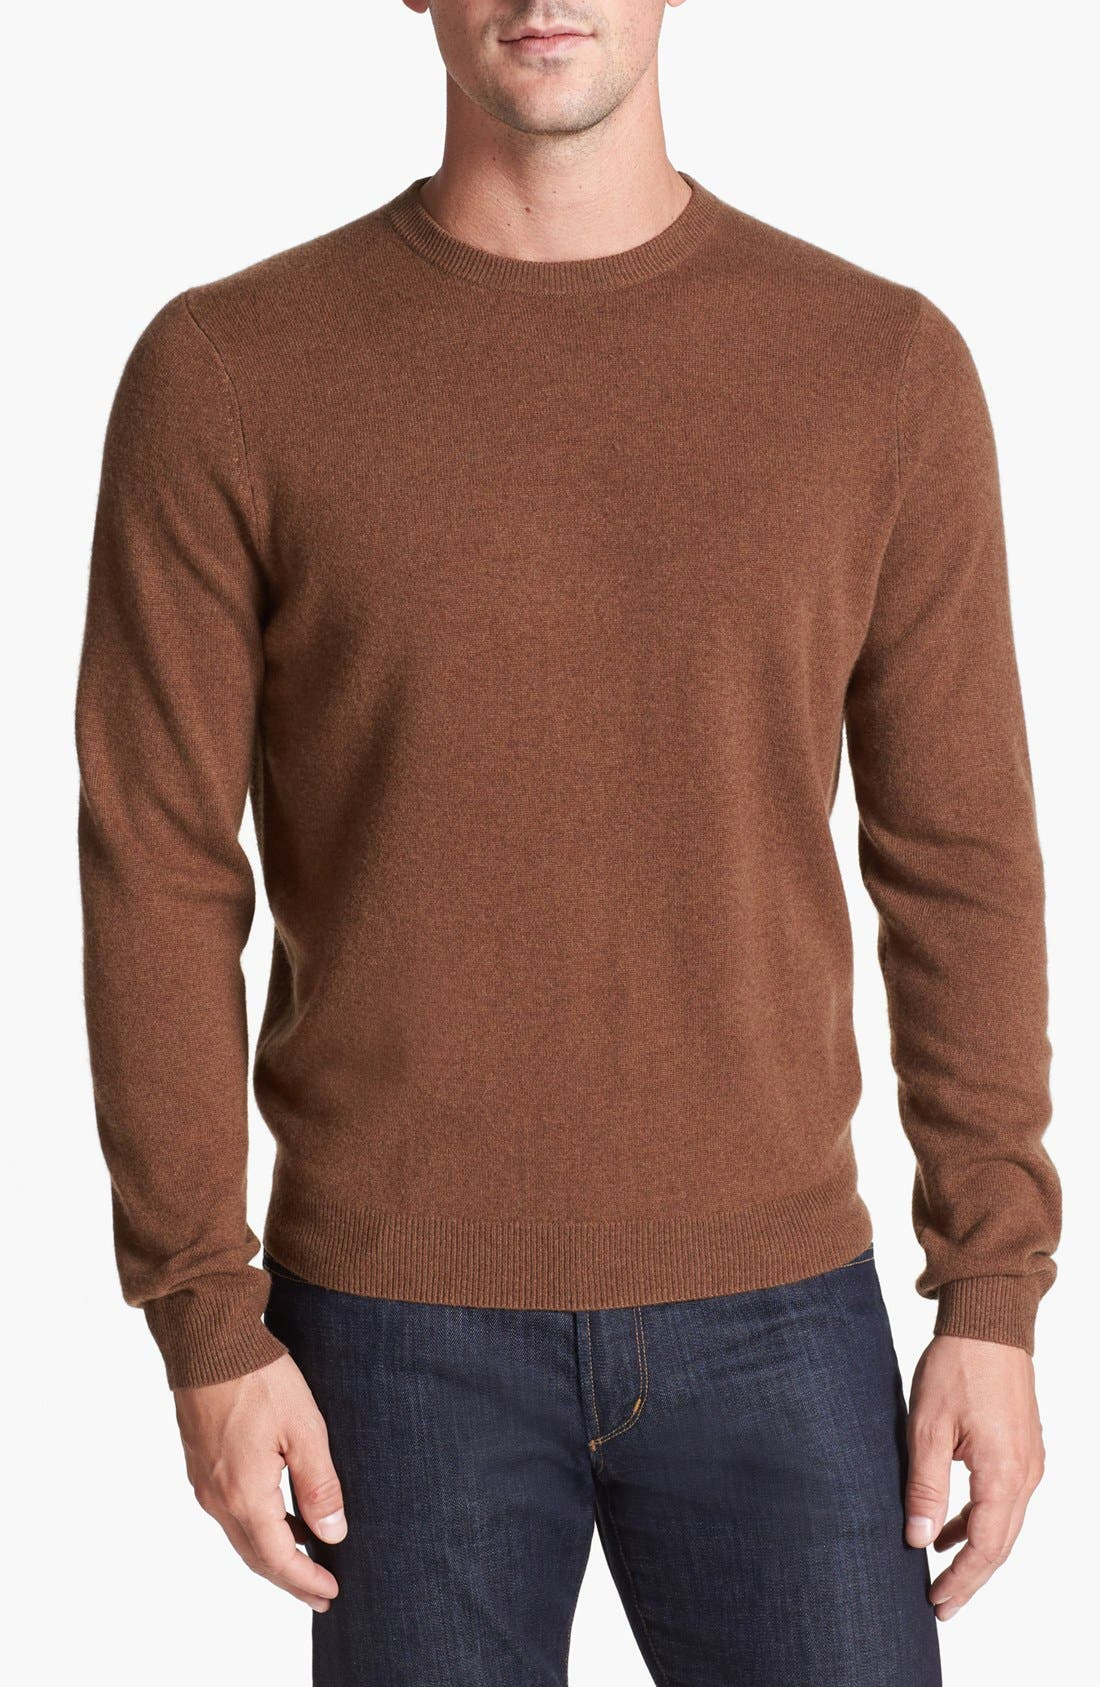 Alternate Image 1 Selected - Nordstrom Cashmere Crewneck Sweater